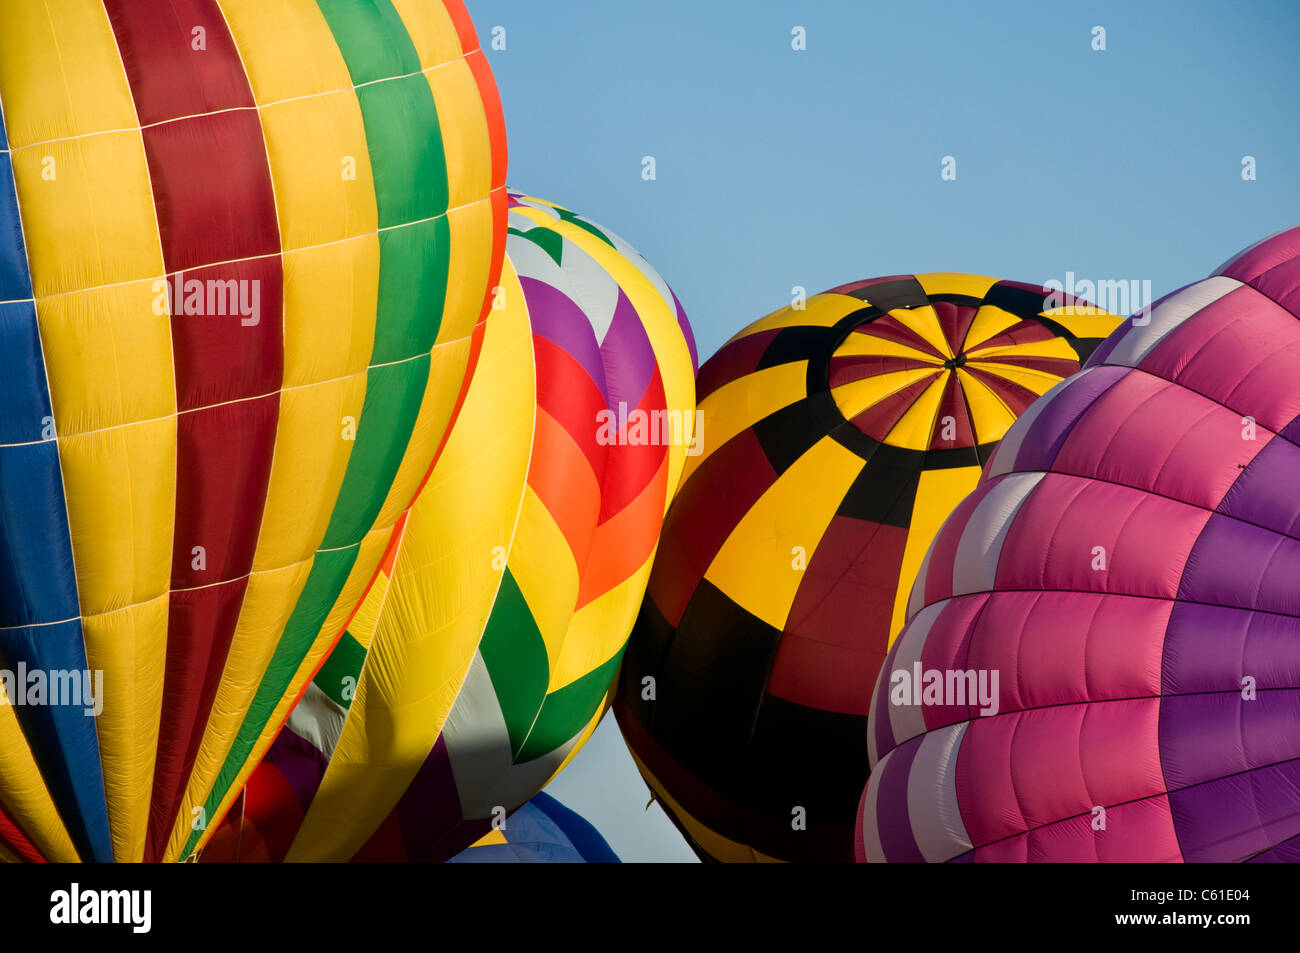 Several hot-air balloons being inflated Stock Photo